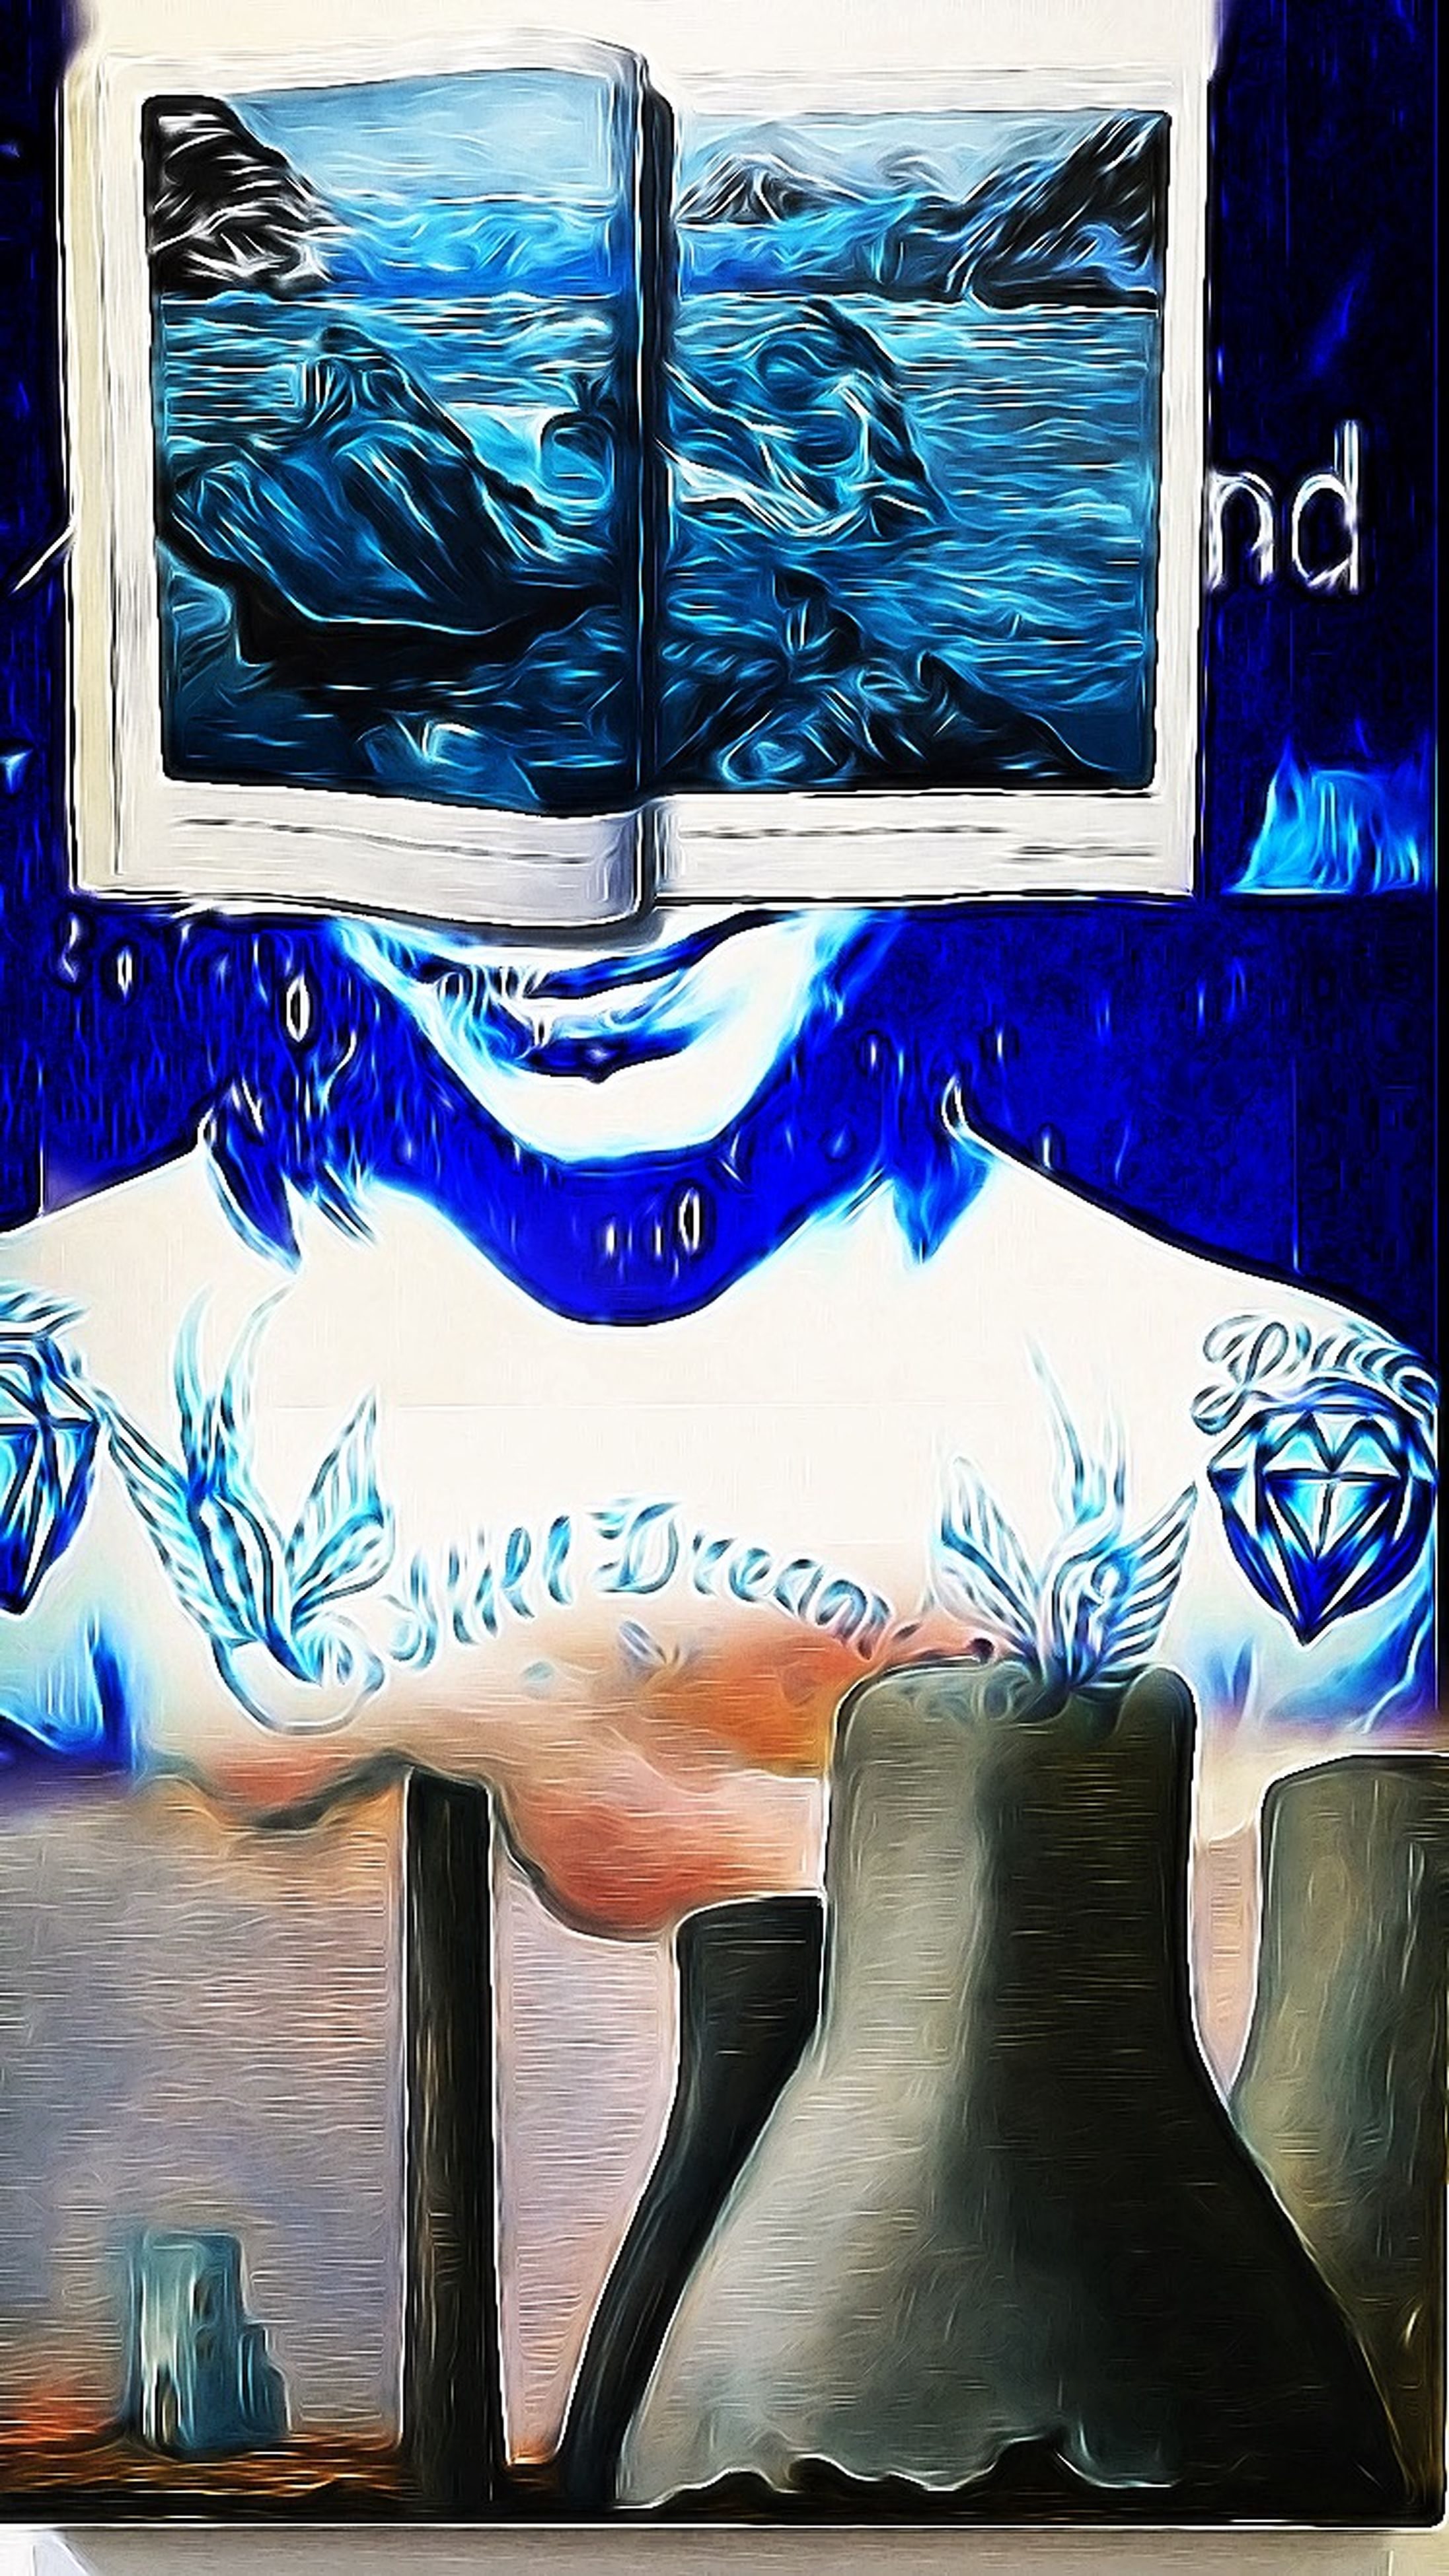 art, graffiti, art and craft, creativity, blue, indoors, text, wall - building feature, animal representation, western script, communication, no people, day, chair, metal, multi colored, close-up, wall, design, wood - material